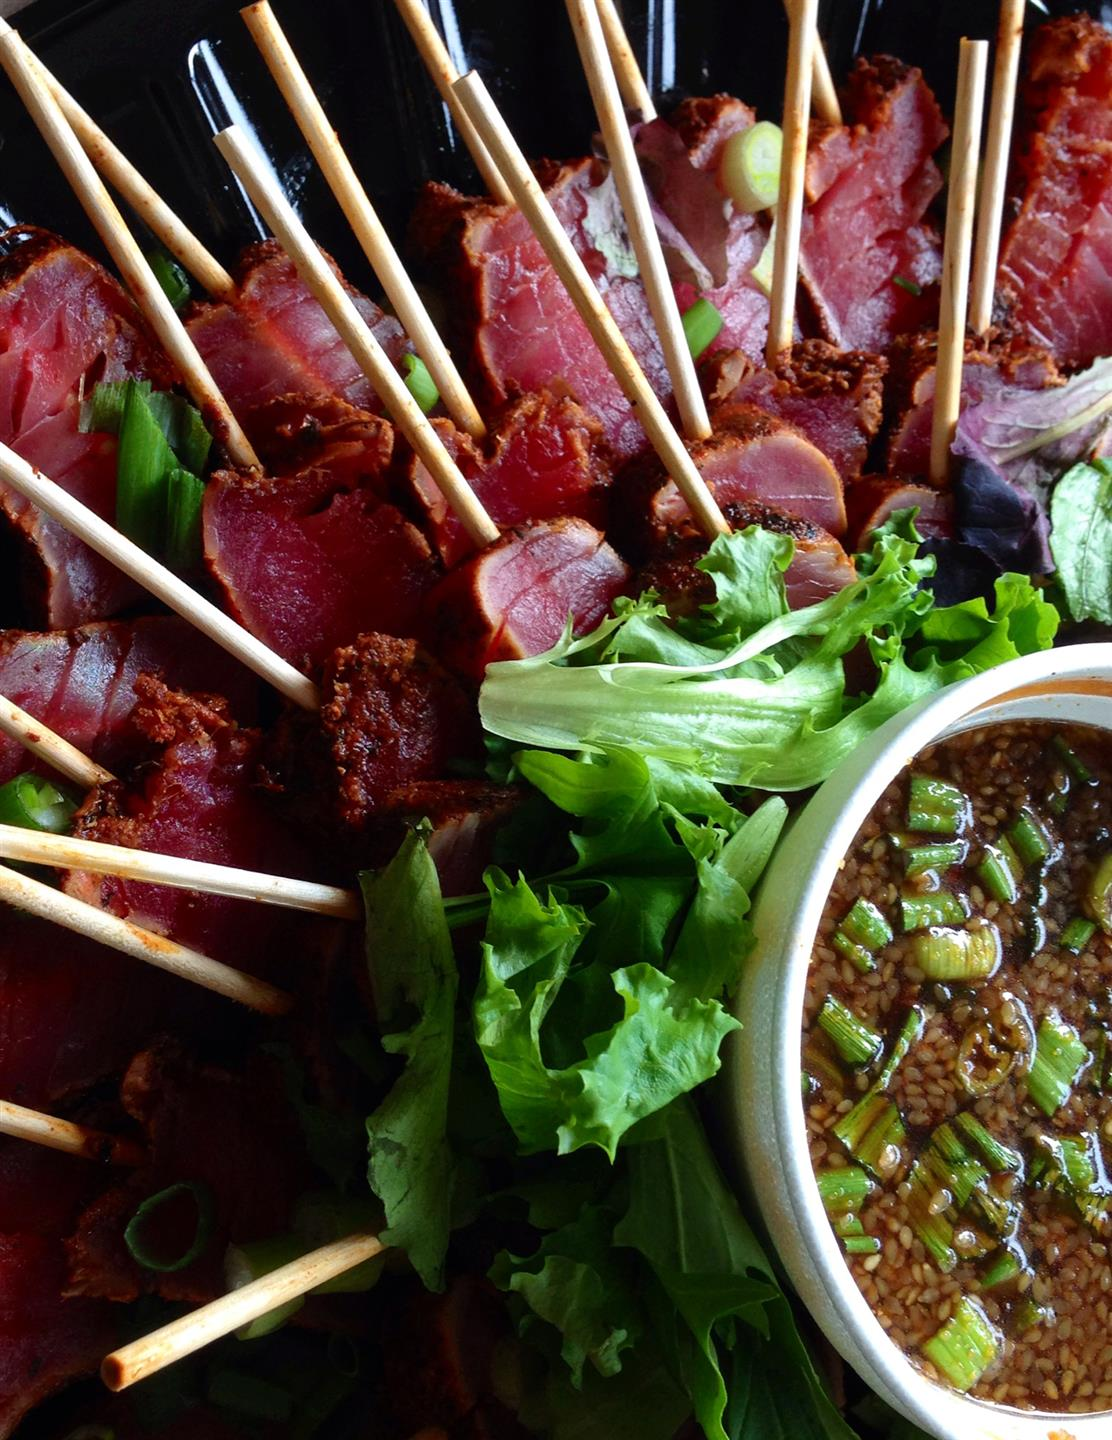 catering display of tuna on skewers topped with greens and sauce on the side